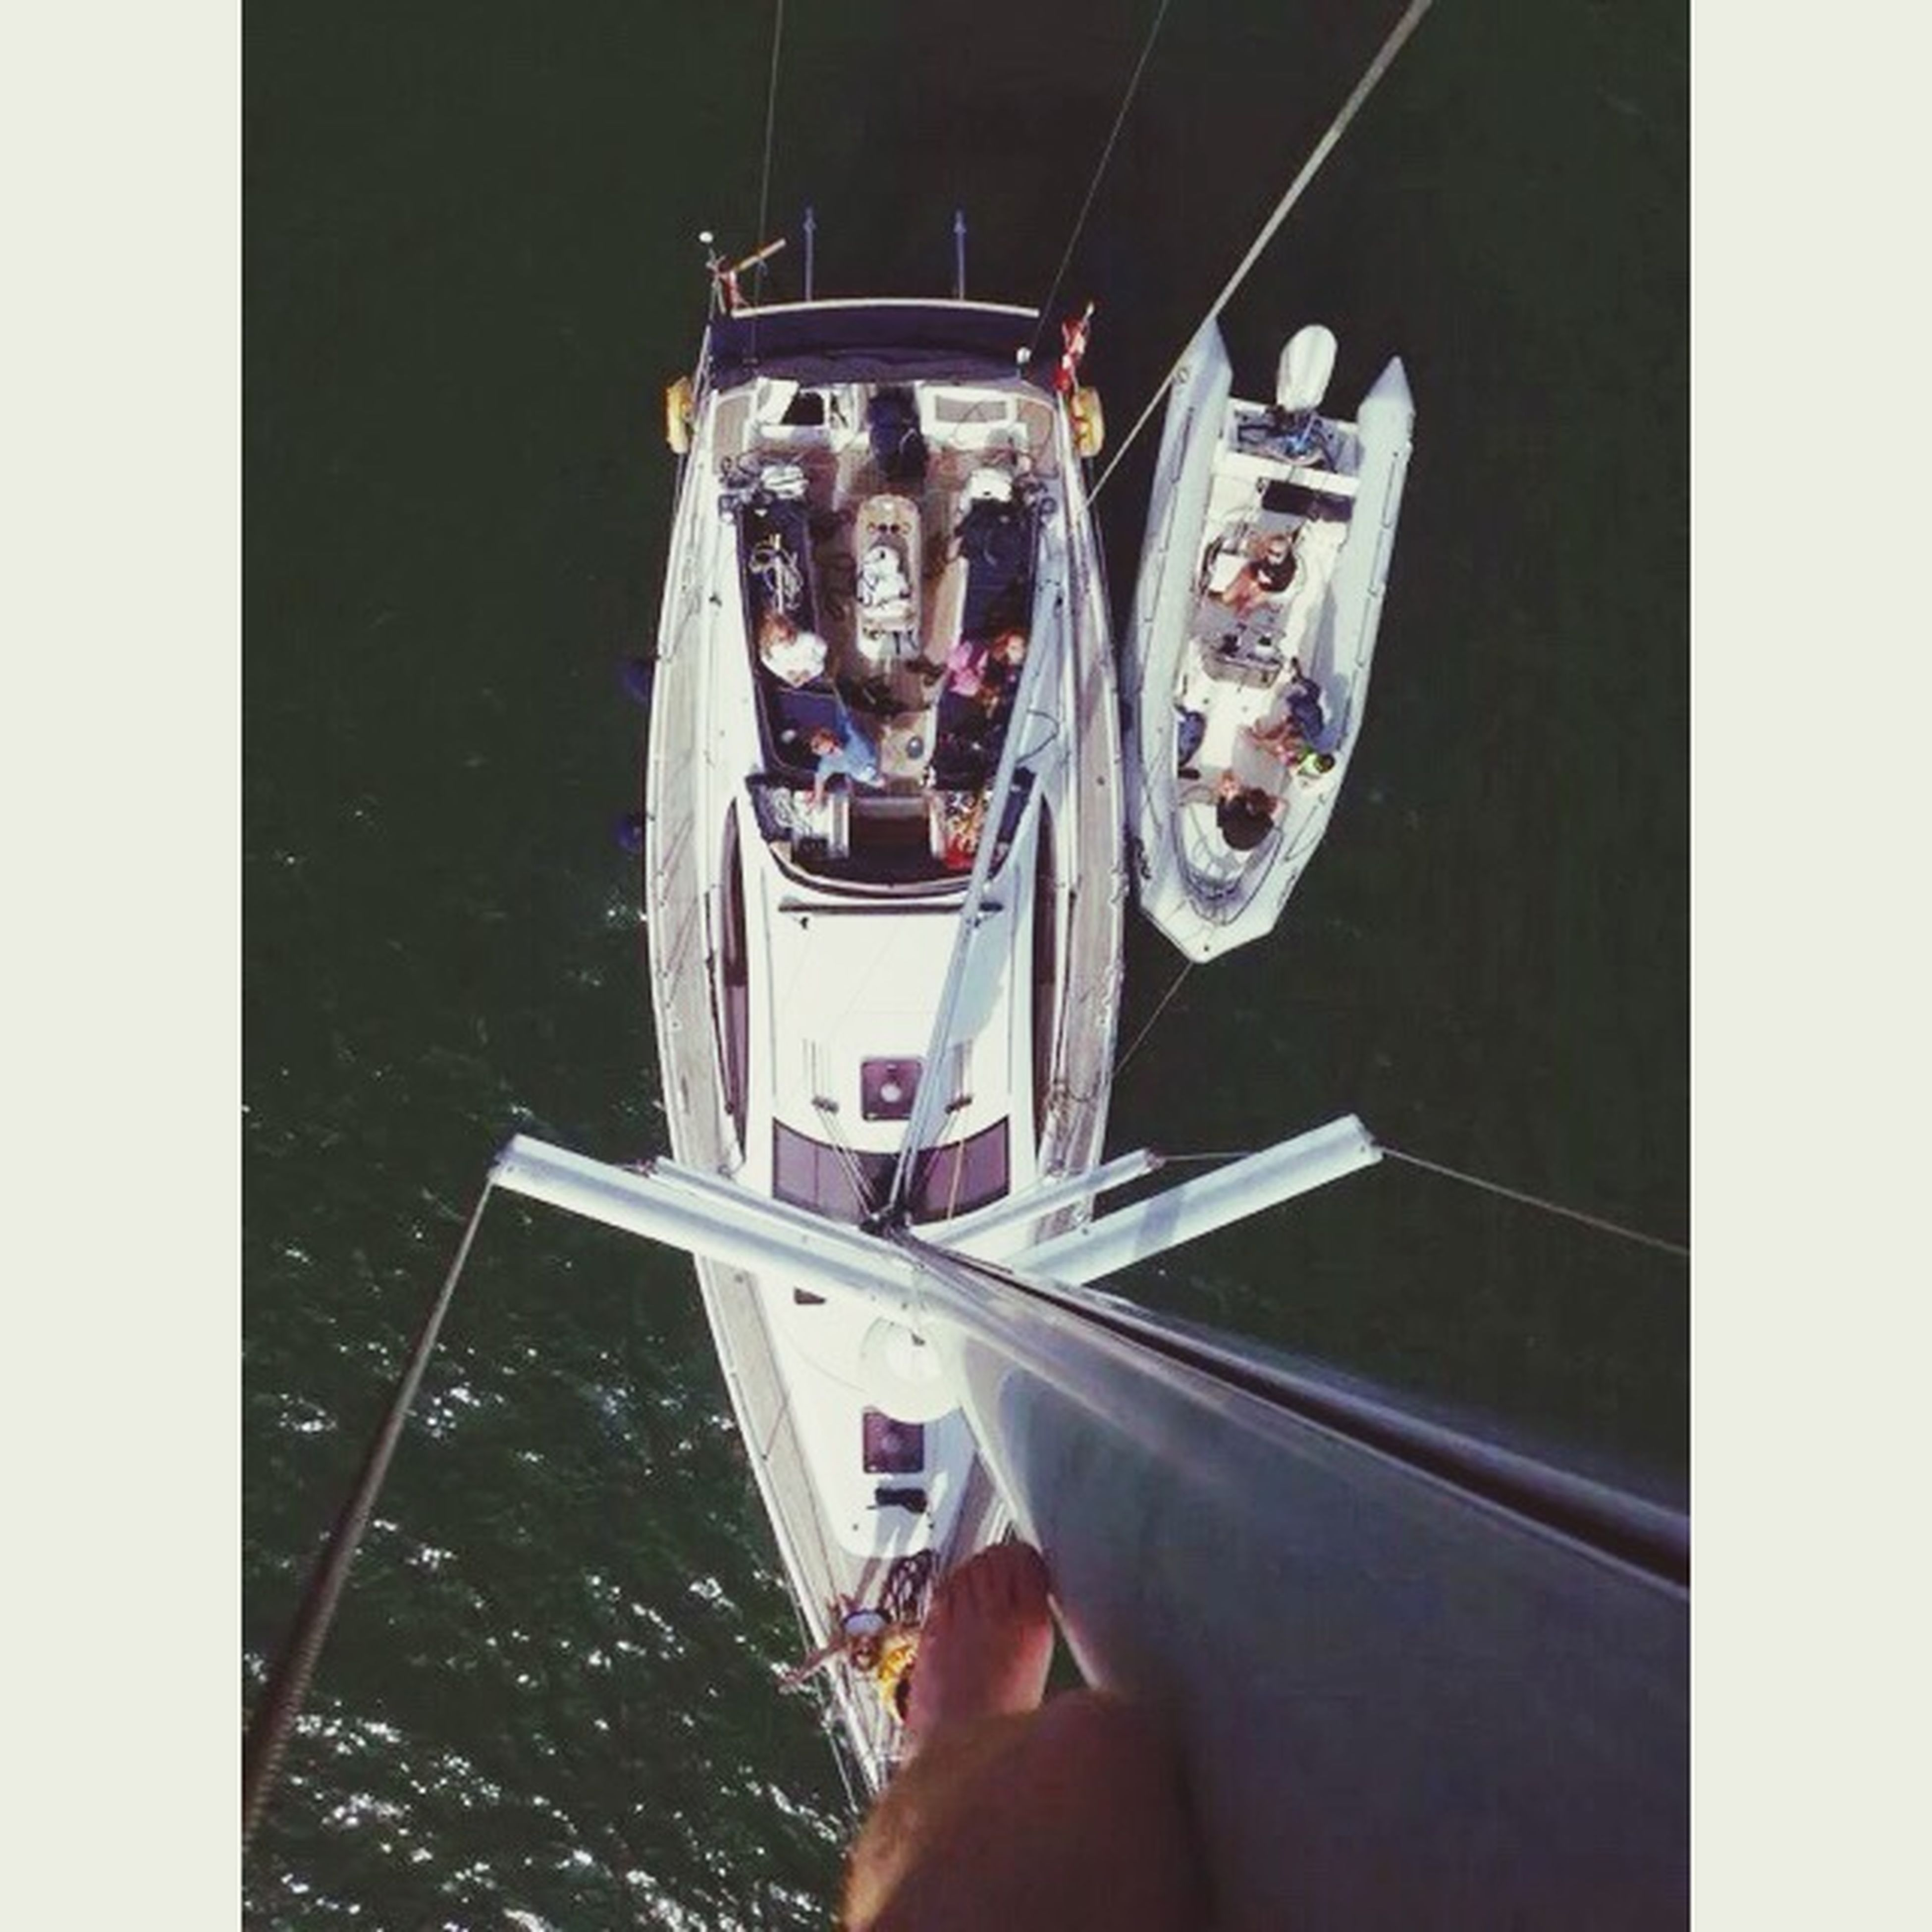 lifestyles, holding, transfer print, leisure activity, auto post production filter, photography themes, transportation, men, wireless technology, technology, sitting, photographing, smart phone, person, nautical vessel, indoors, part of, mode of transport